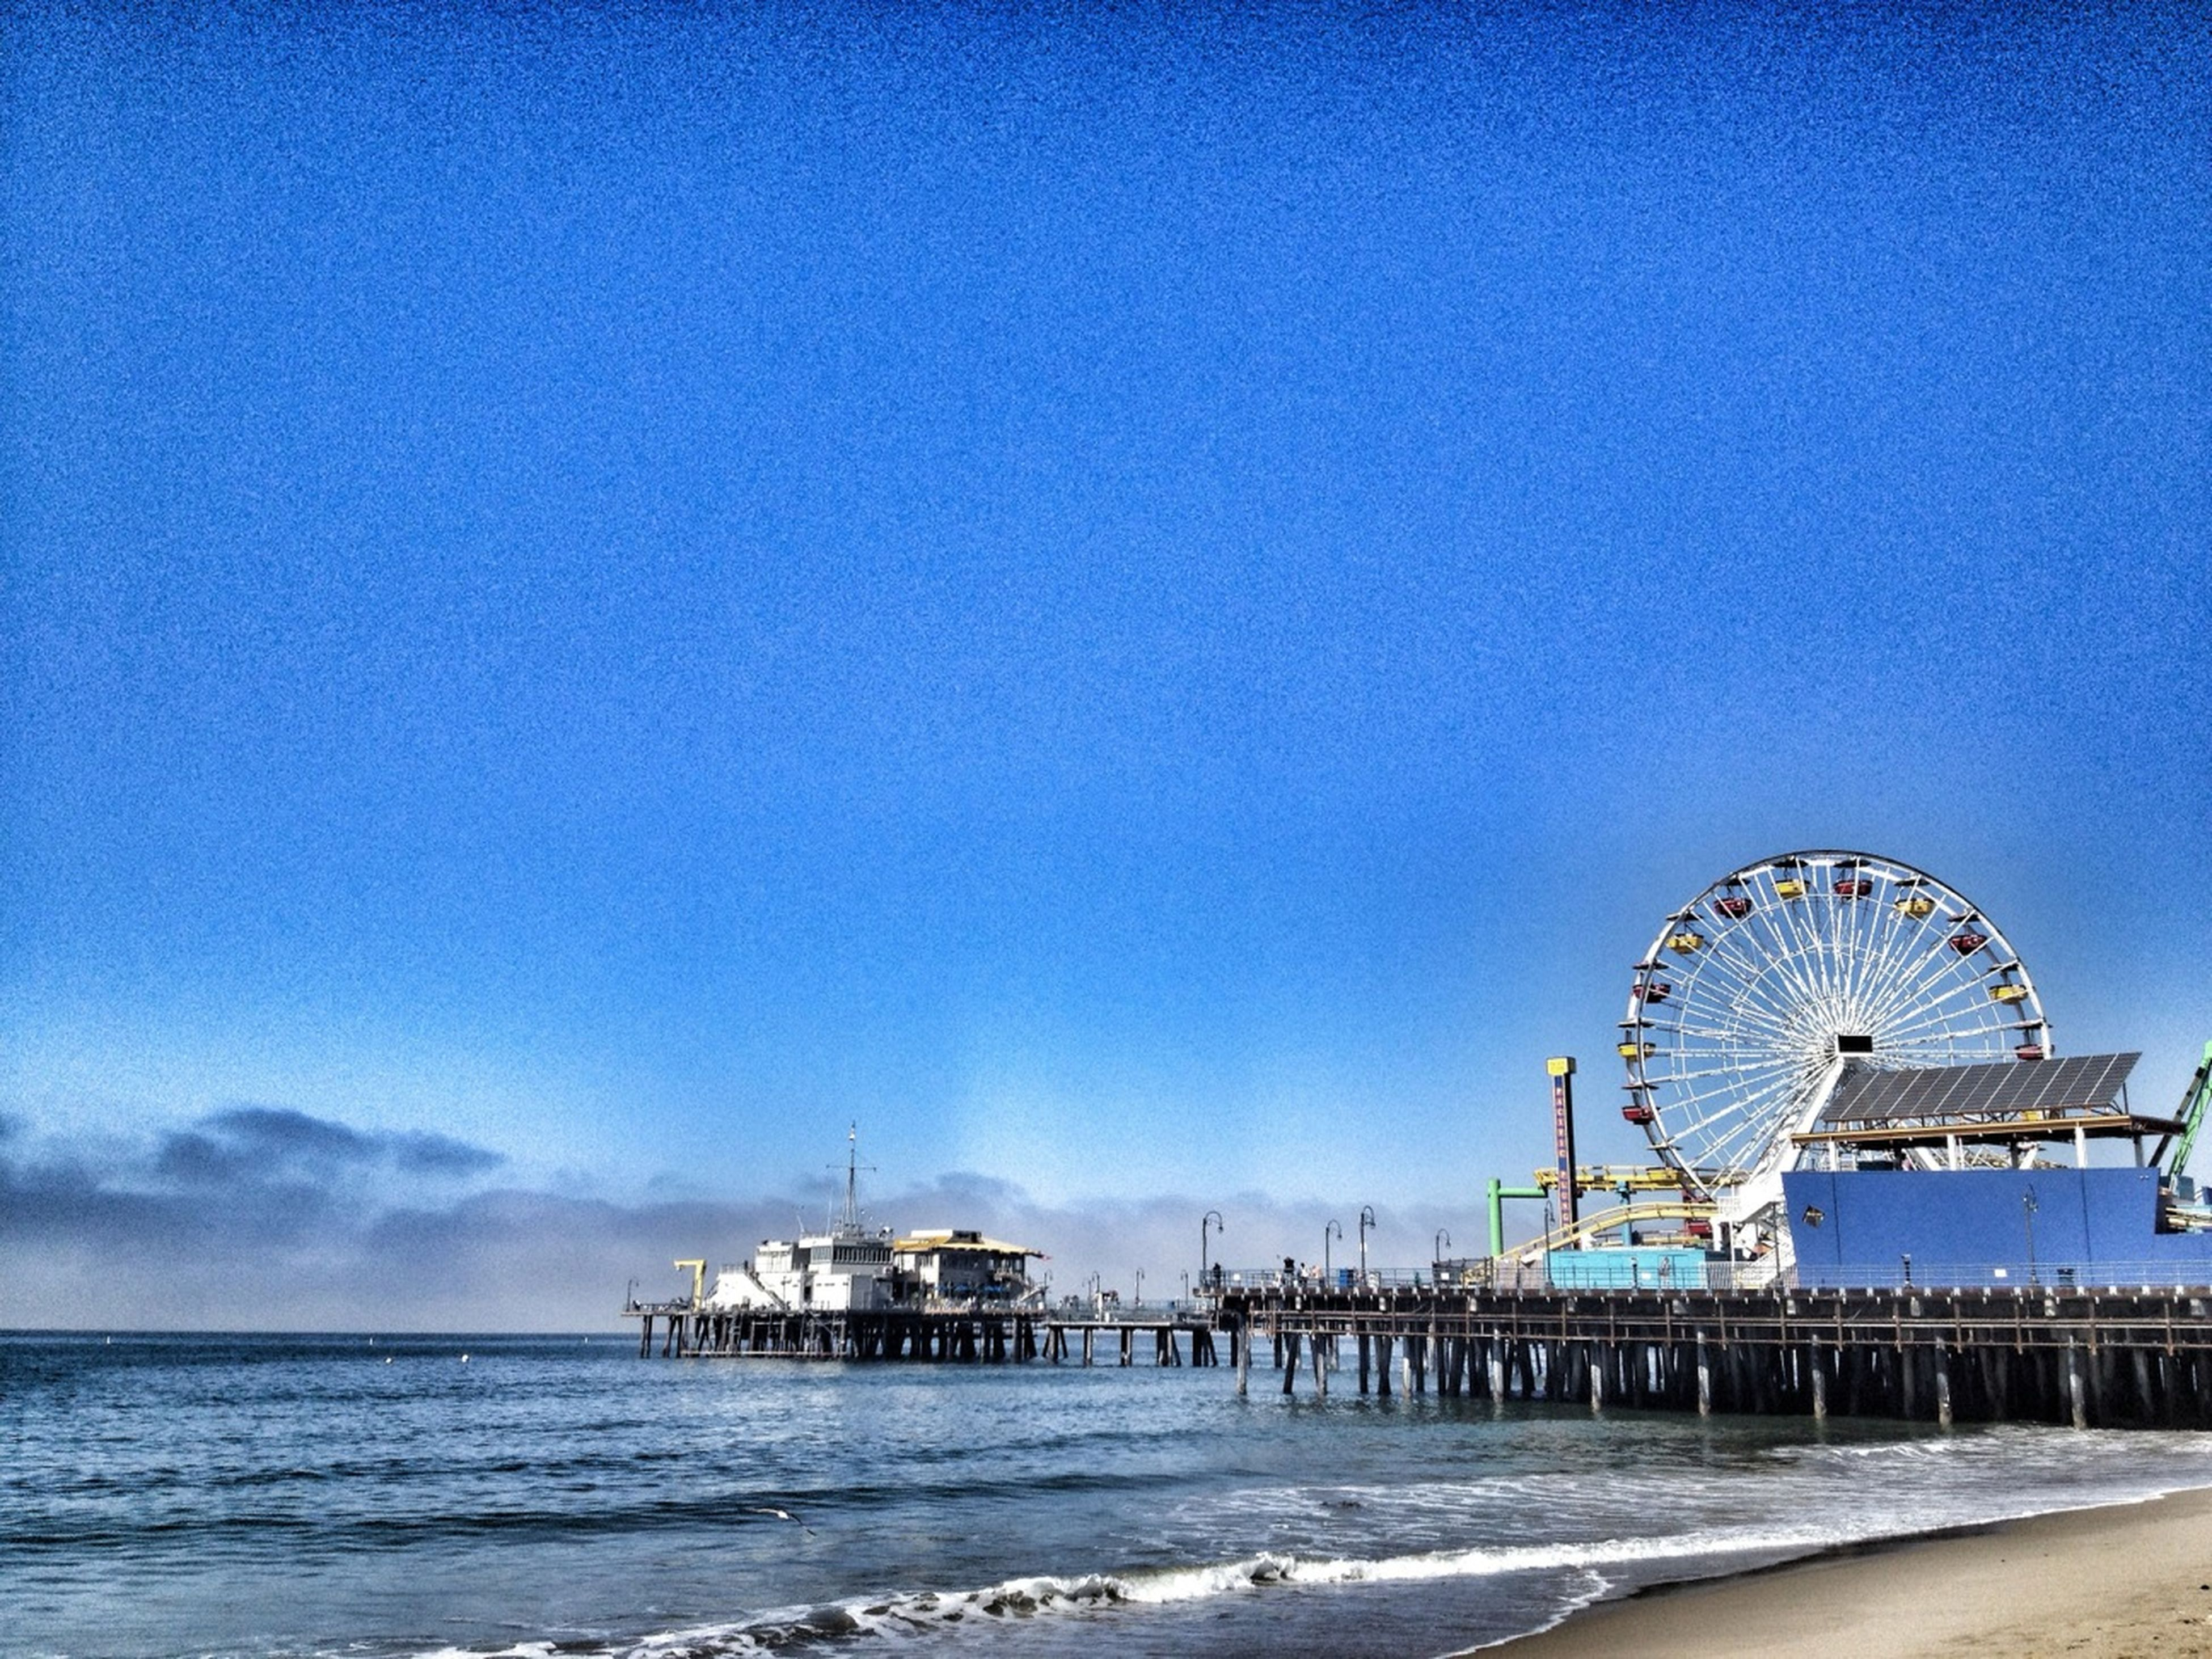 sea, water, beach, blue, horizon over water, sky, shore, sand, built structure, copy space, nautical vessel, tranquility, tranquil scene, transportation, clear sky, ferris wheel, architecture, scenics, nature, outdoors